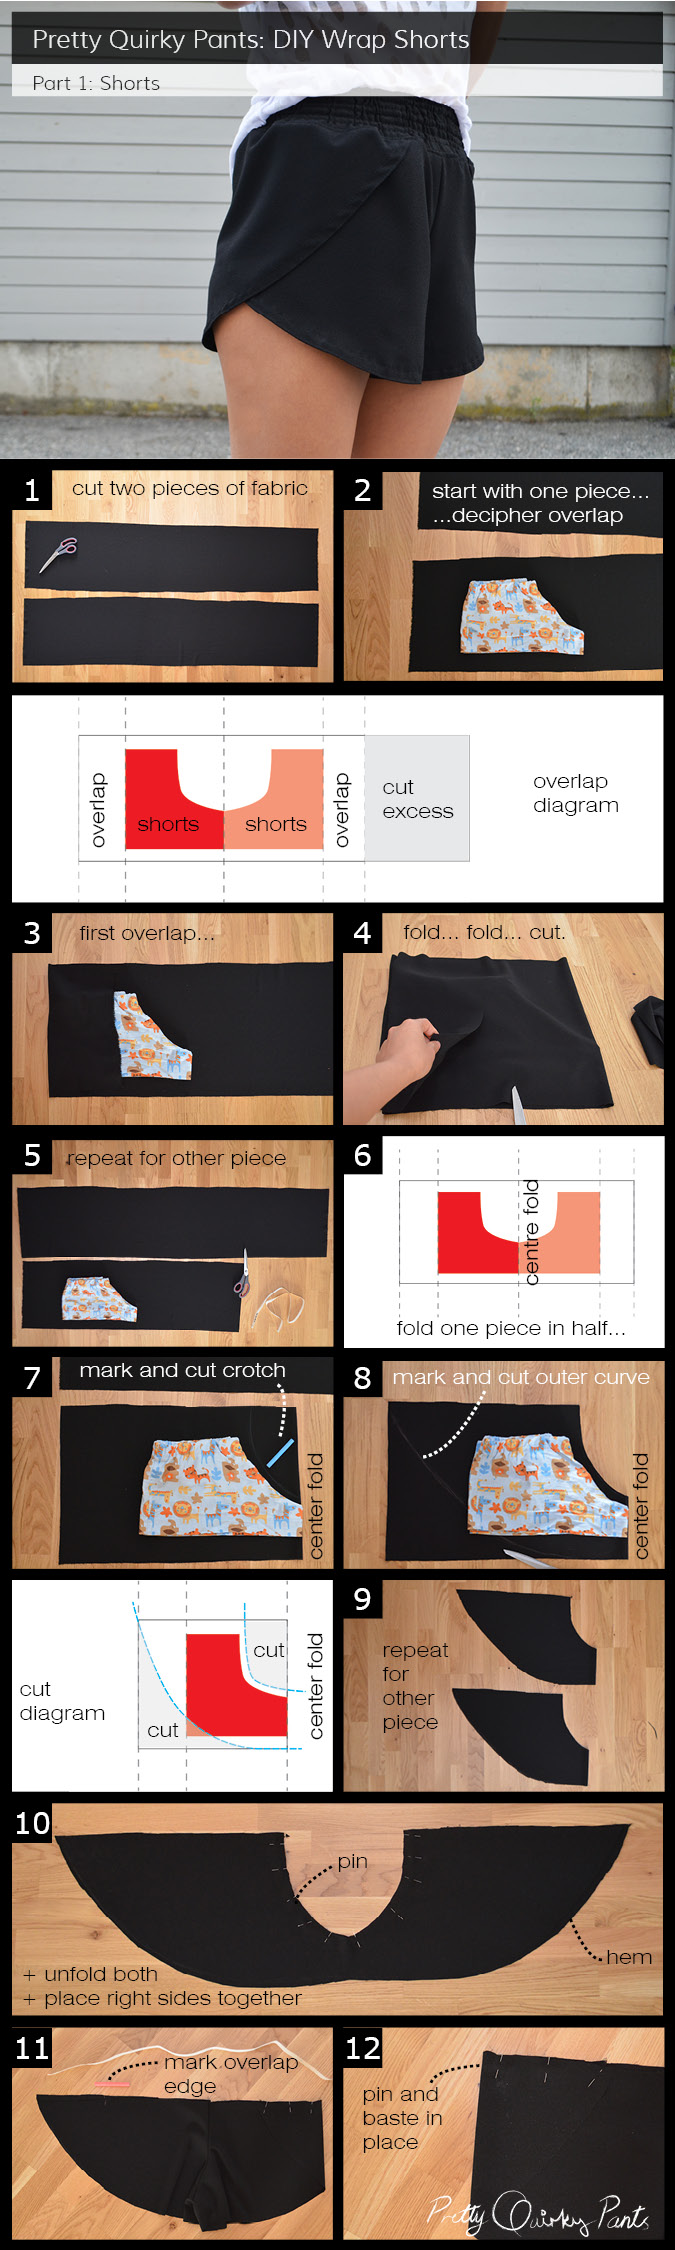 Instruction Layout - wrap shorts